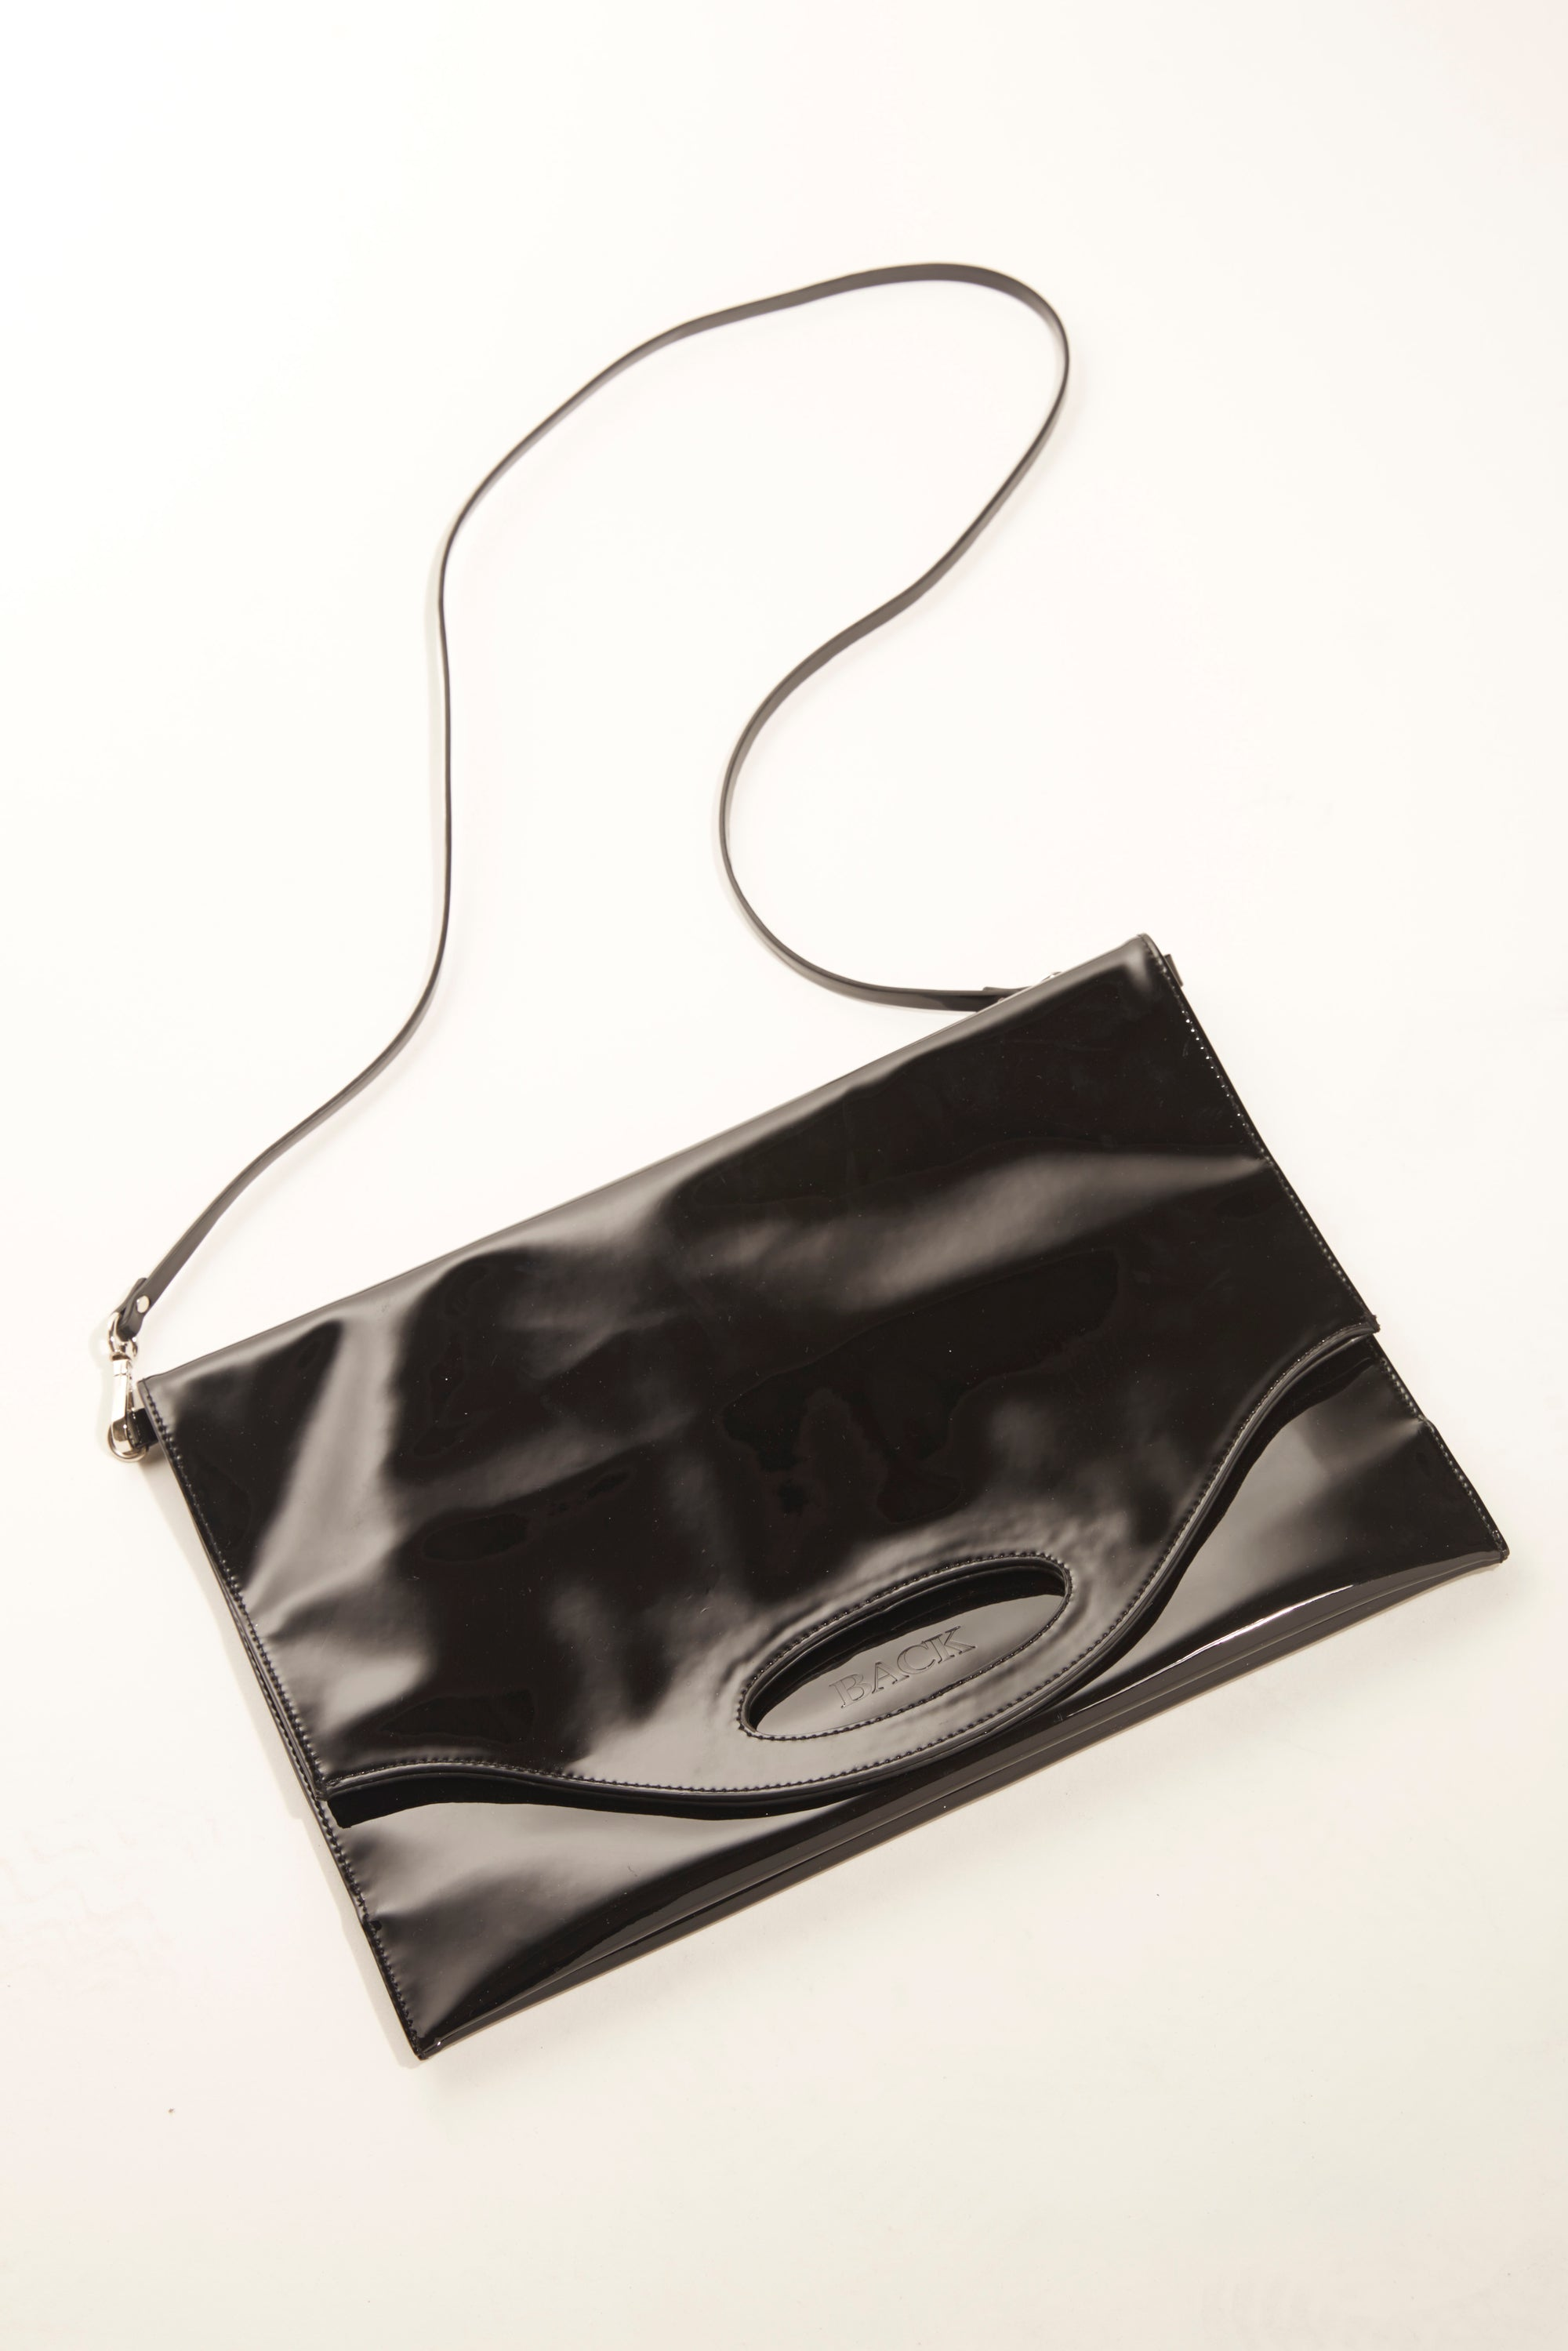 Shopper Bag - Black Patent  c17e94aa9a7ad